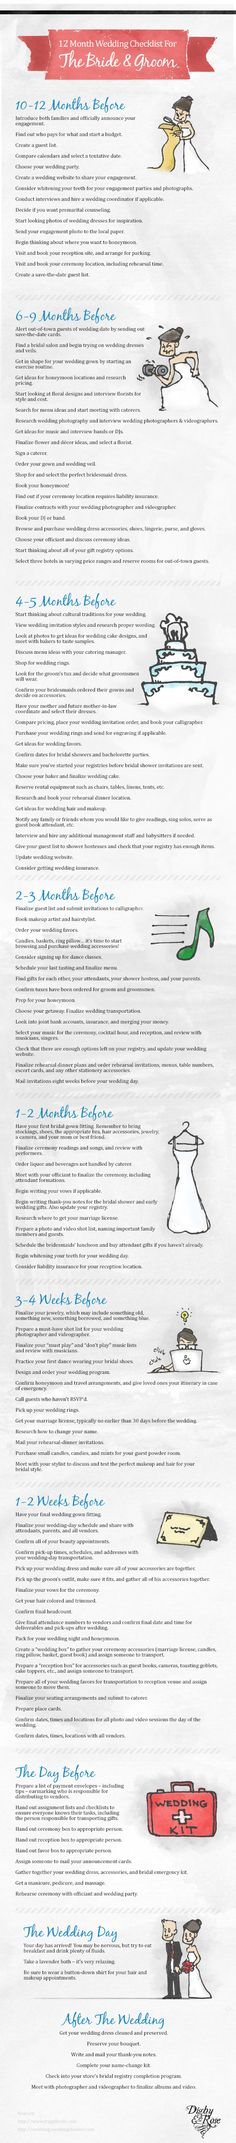 12 month wedding checklist wedding planning series